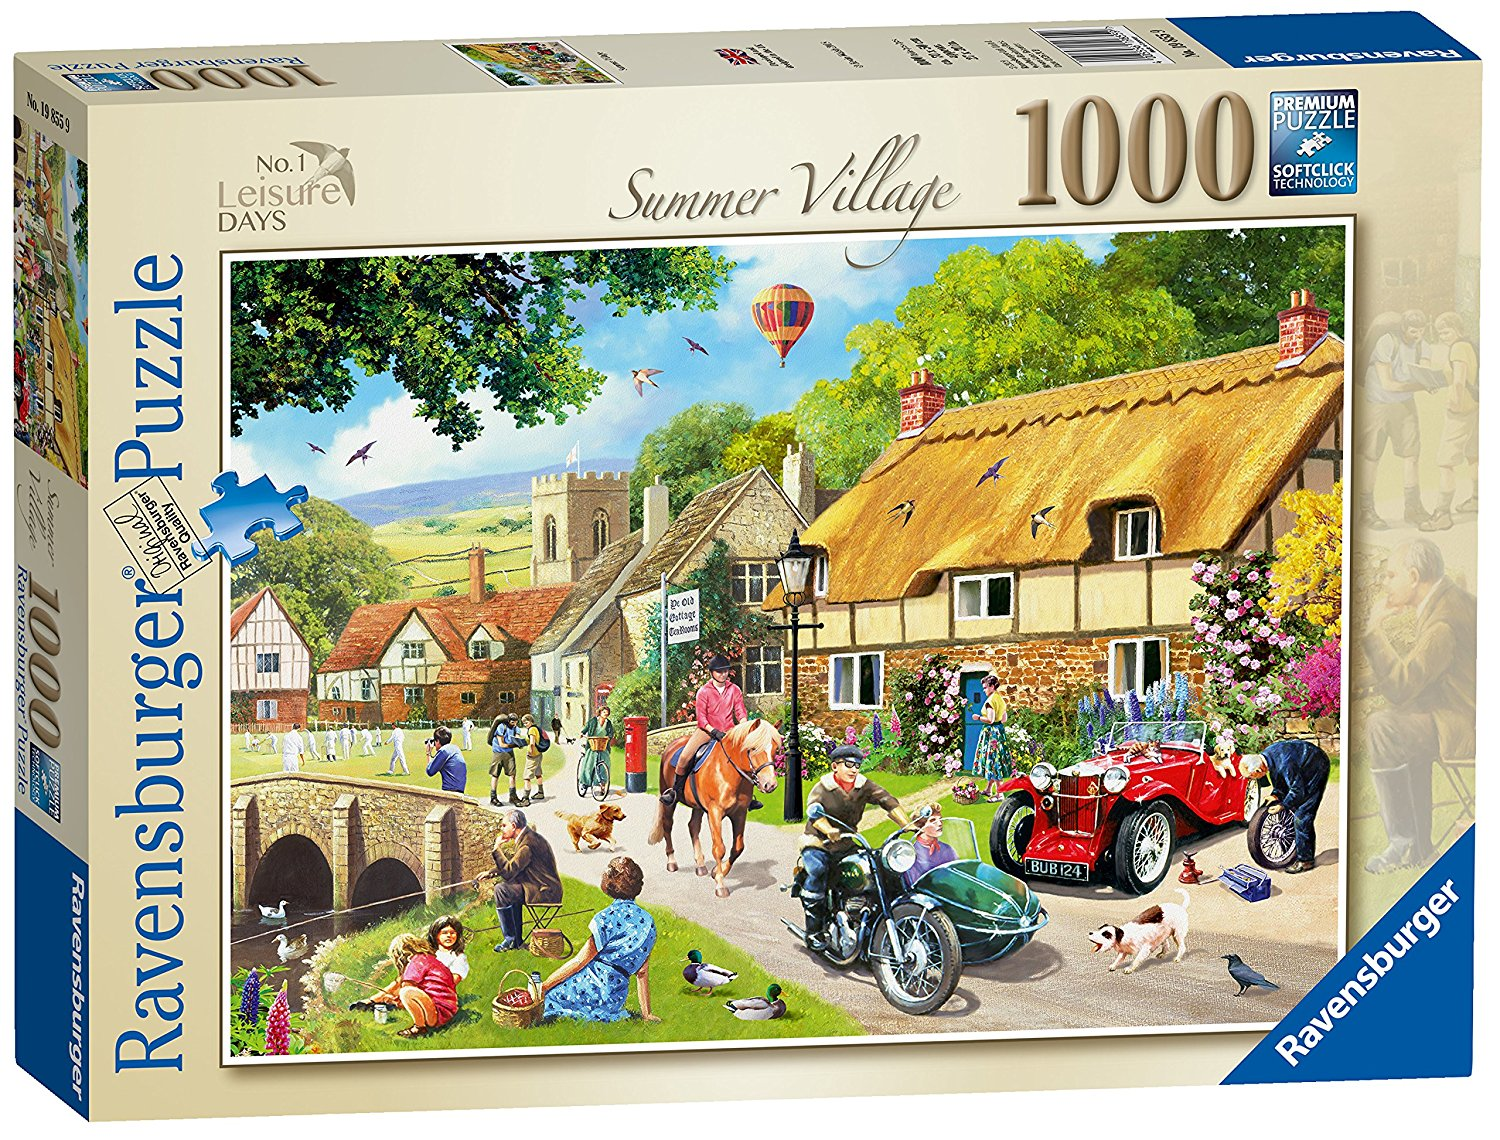 Summer Village Jigsaw, 1000pc